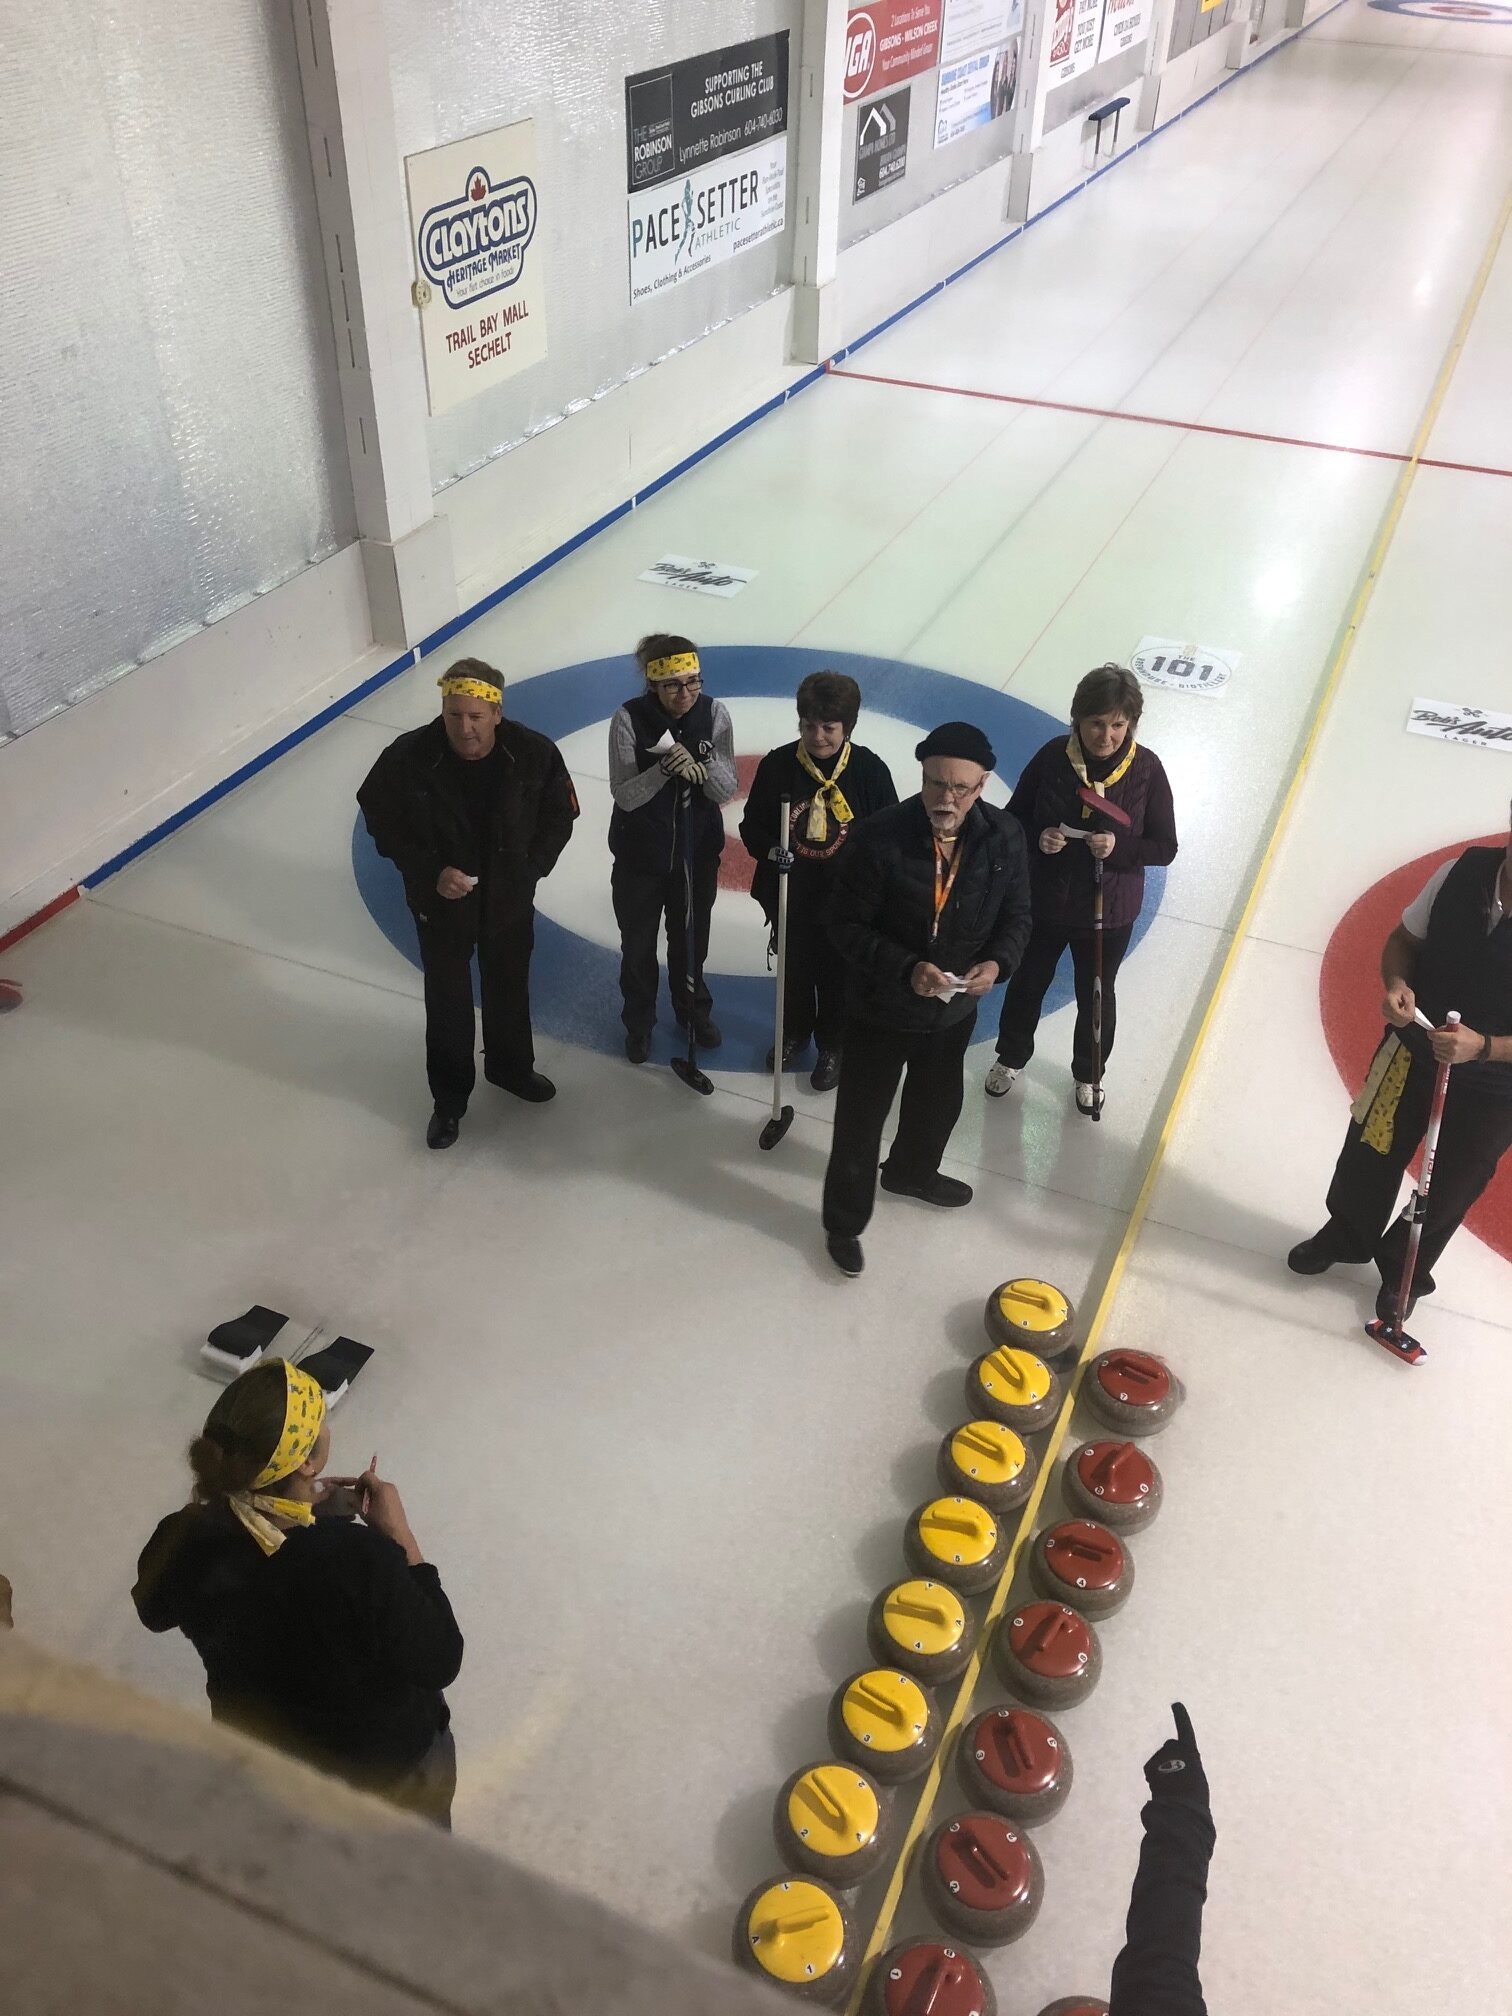 National Curling Day 2020 - Gibsons, BC